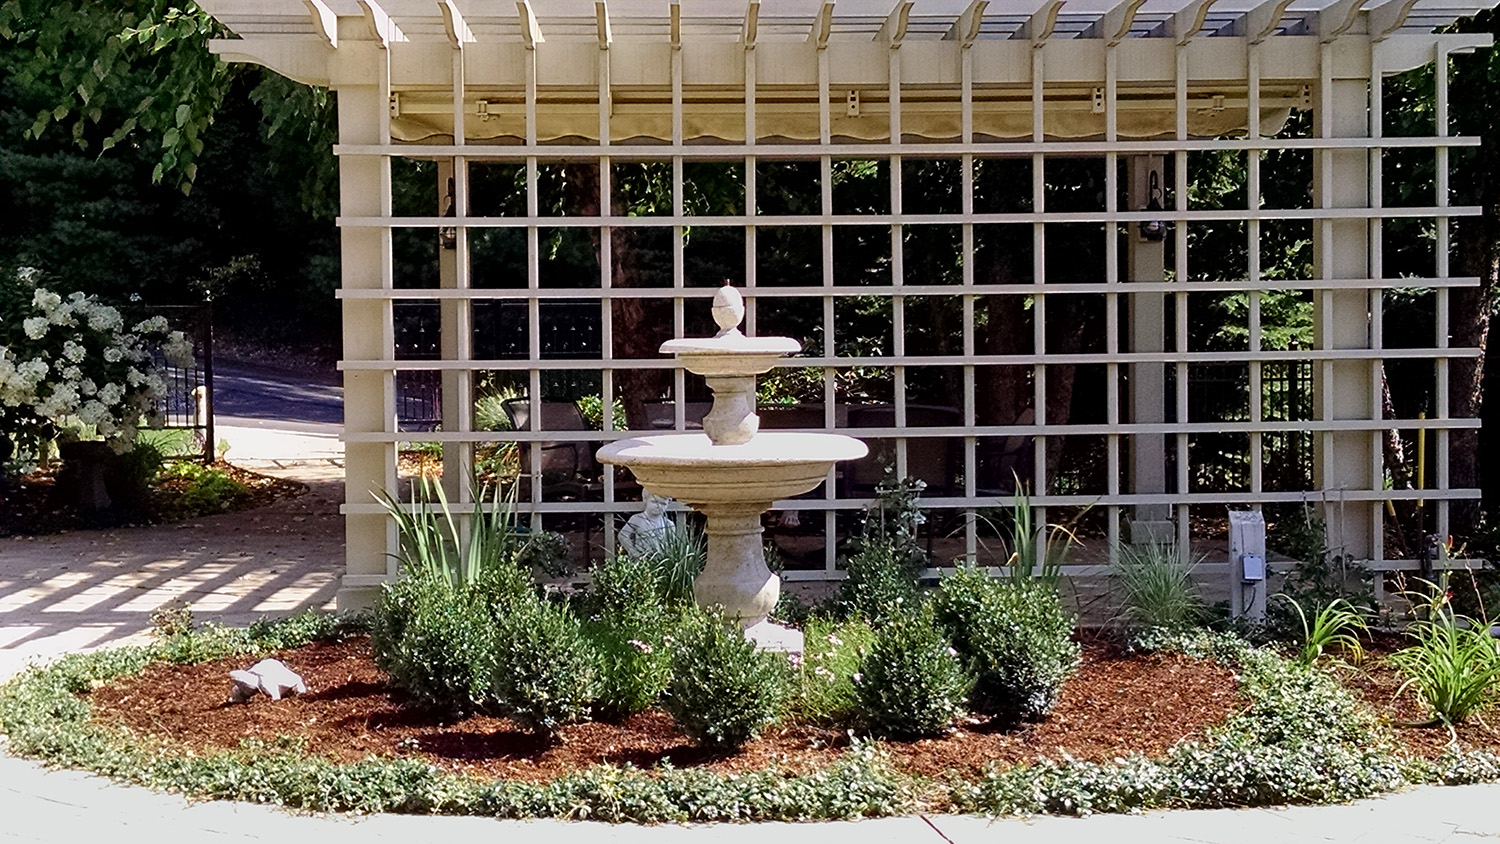 boxwood surrounds 2-tier water fountain in formal garden